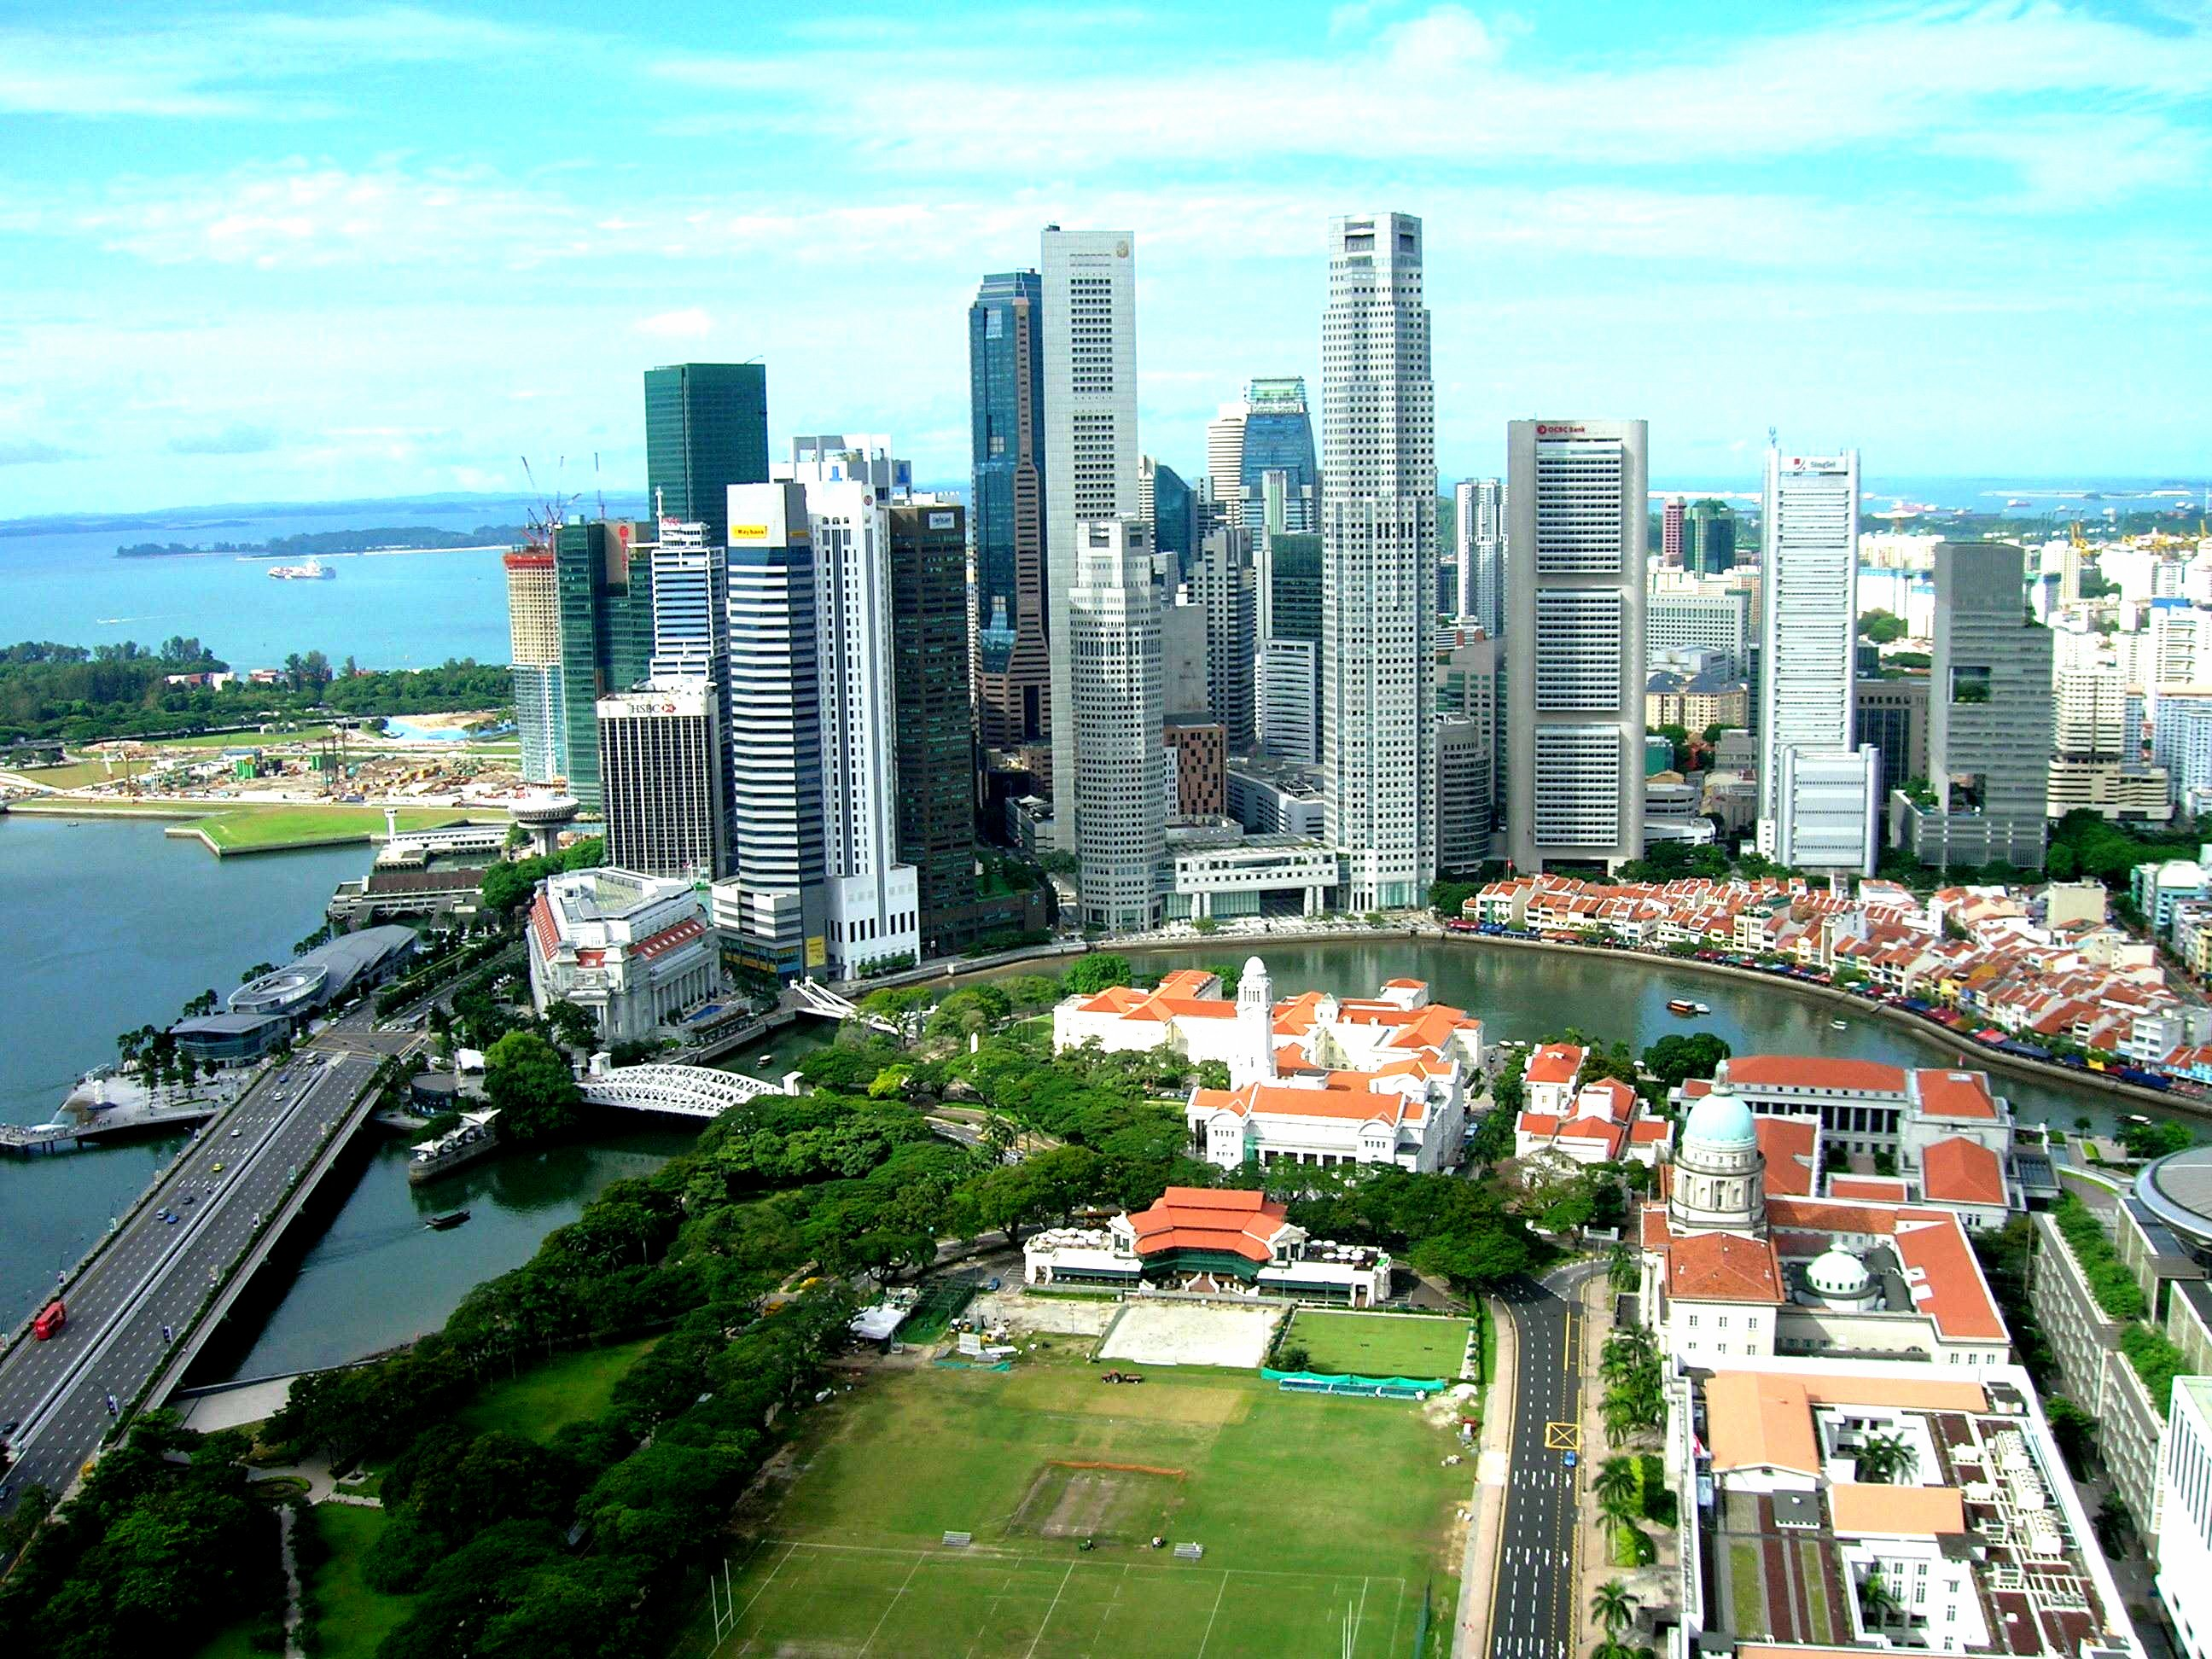 Singapore is a city full of diversity with a careful design that emphasizes beauty 11 Million+ Hotel Reviews· 22 Million+ Customers· 61, Cities WorldwideAmenities: Free WiFi Hotels, TV & Cable, Breakfast, Pool.